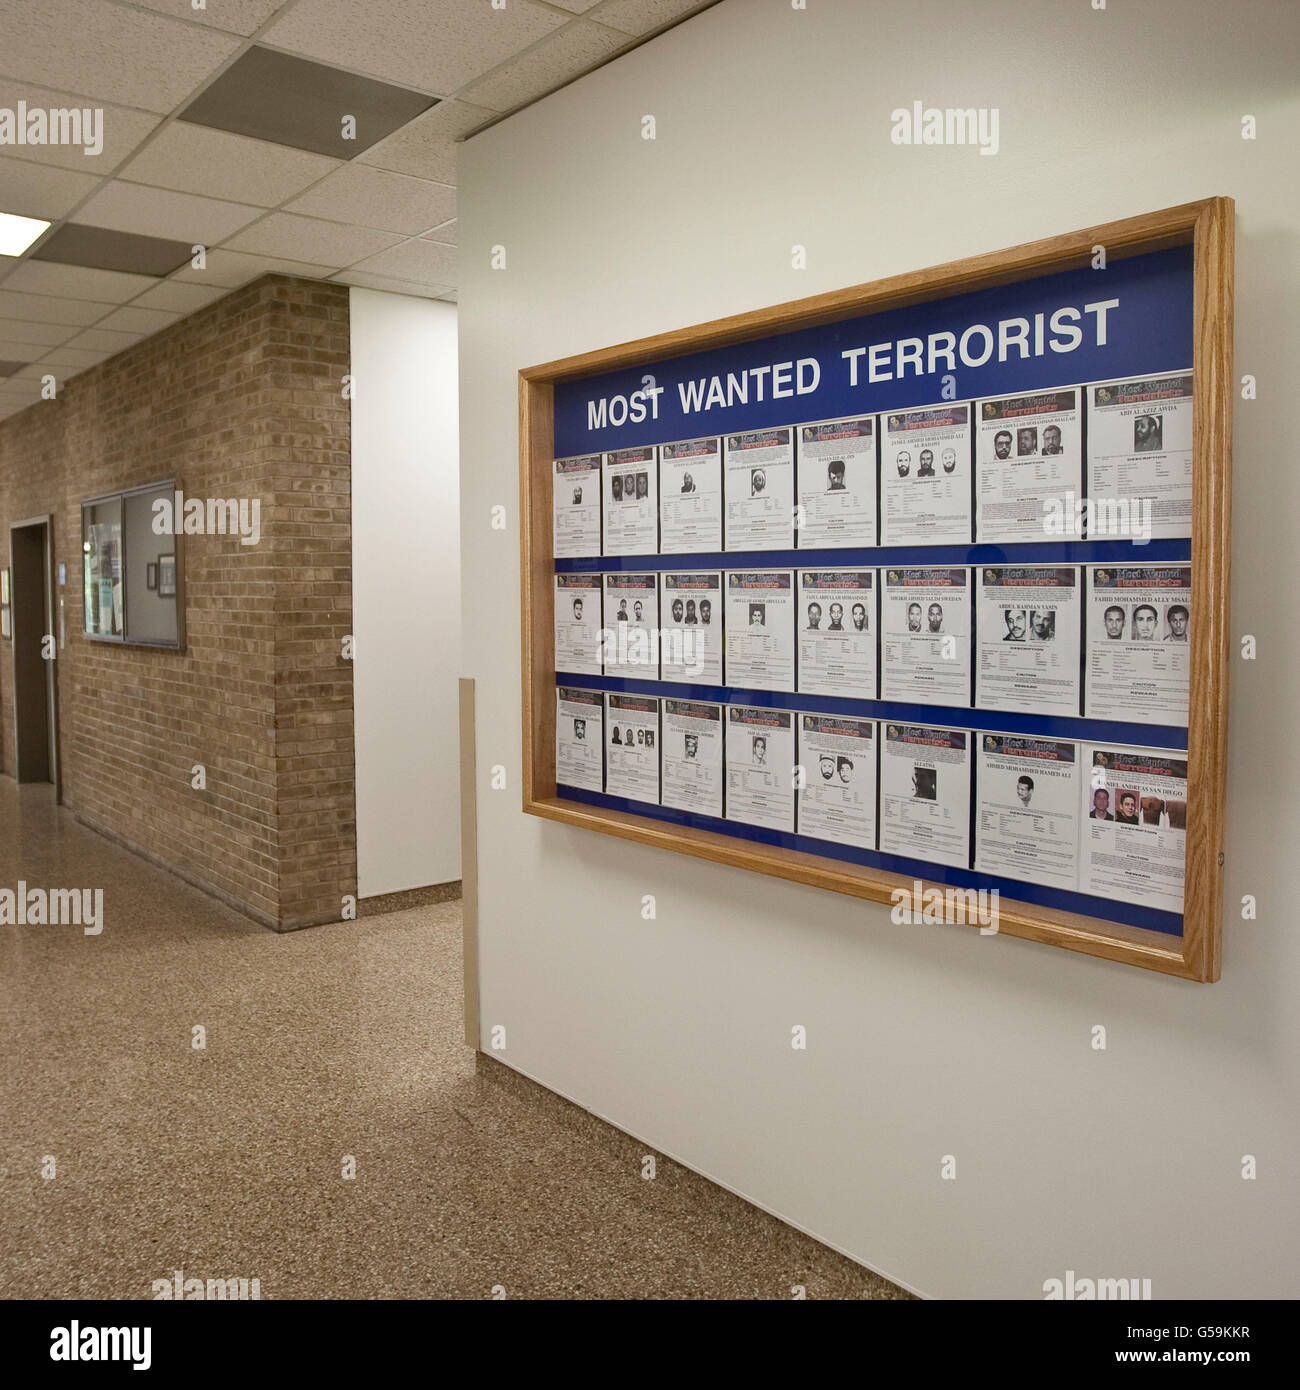 Display listing the FBI's most wanted terrorists on a wall